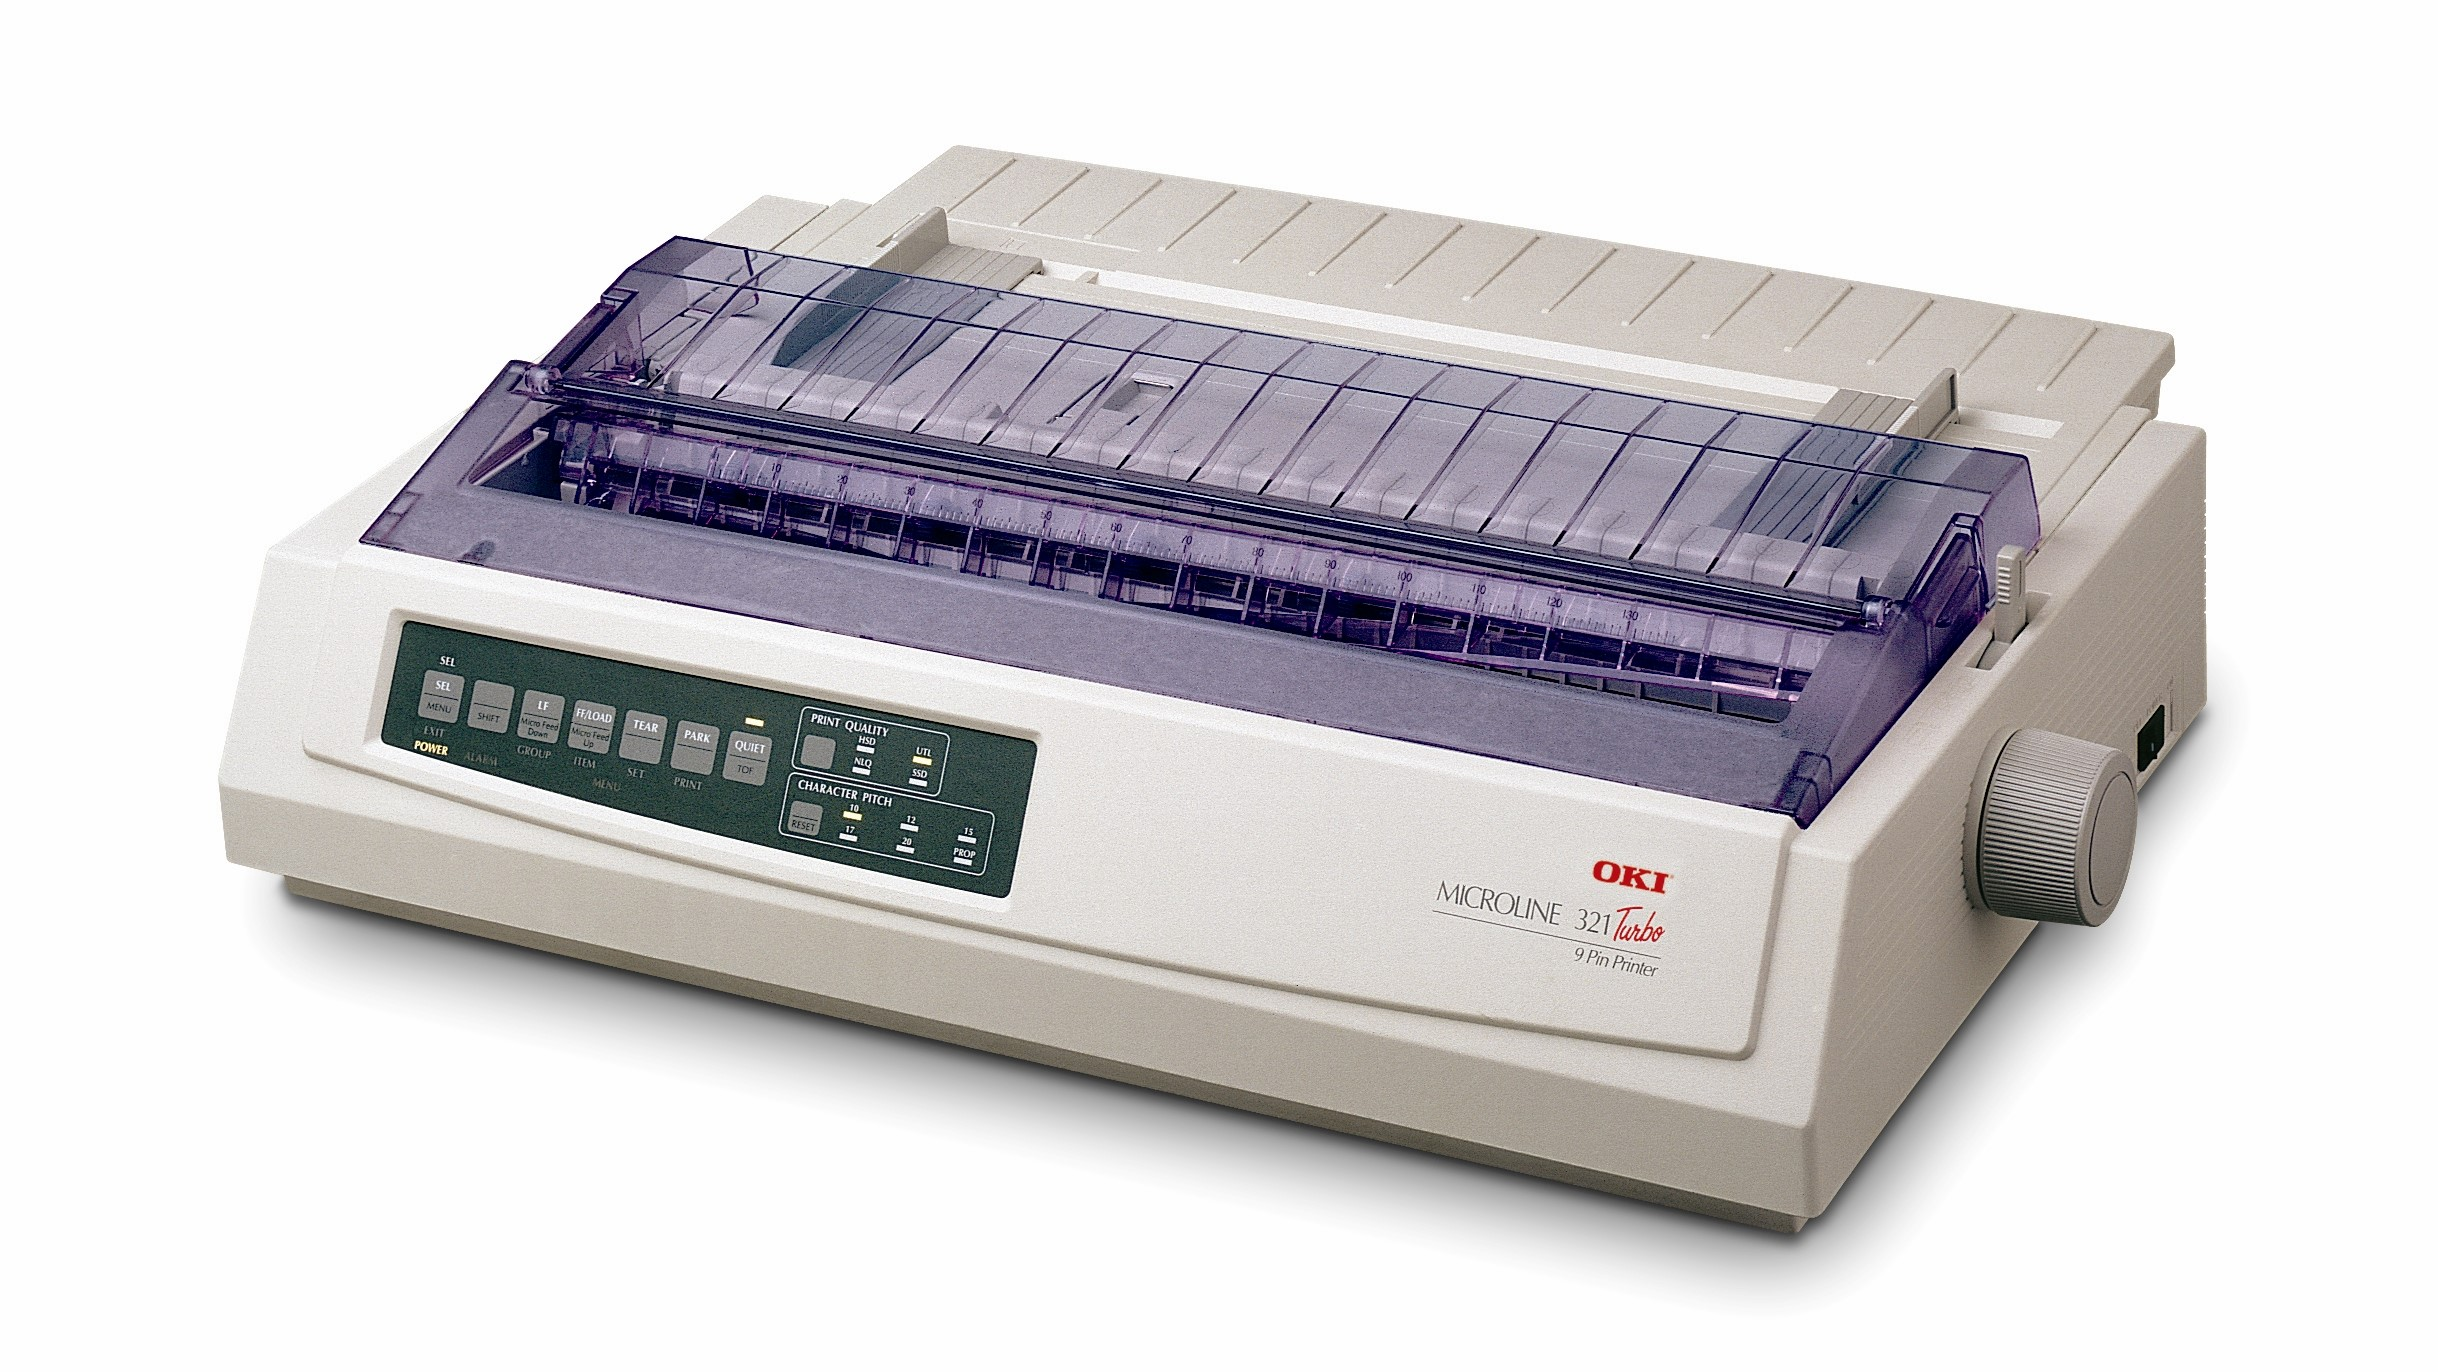 Specifications | MICROLINE 320 Turbo/ MICROLINE 321 Turbo | 9 Pin Dot  Matrix Printers | OKI Data Americas